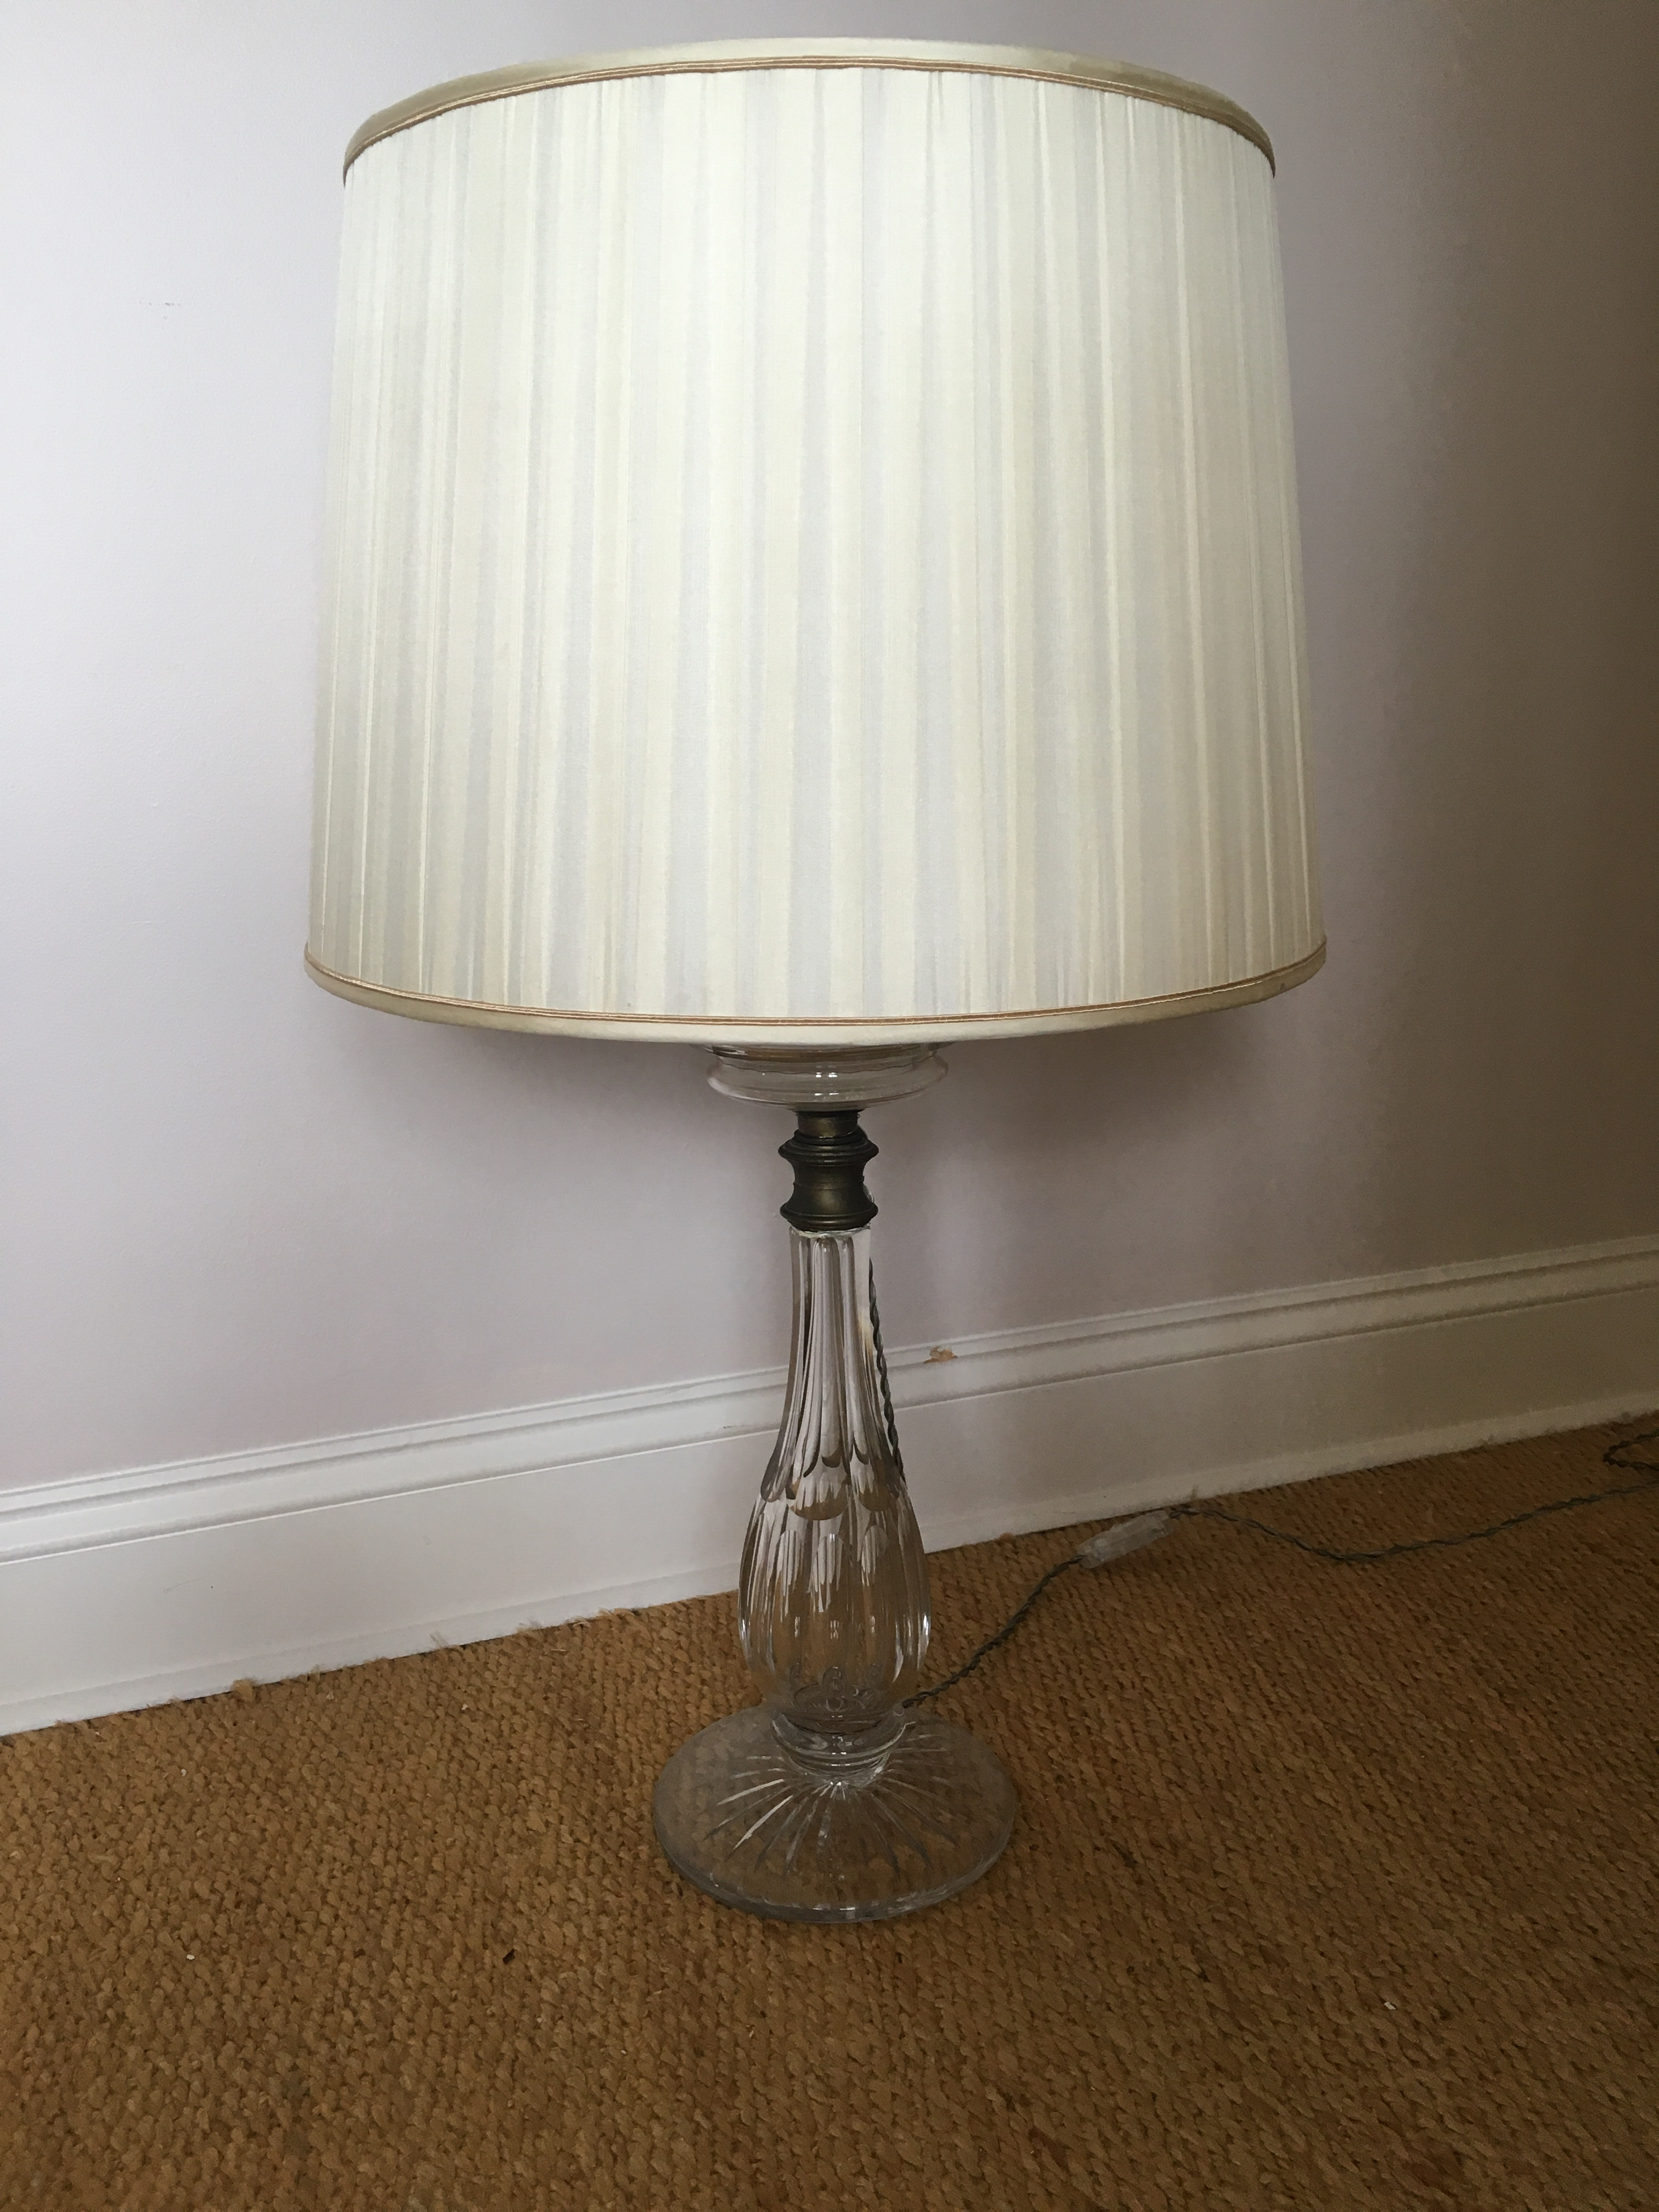 Vintage leviton glass table lamp image 4 of 7